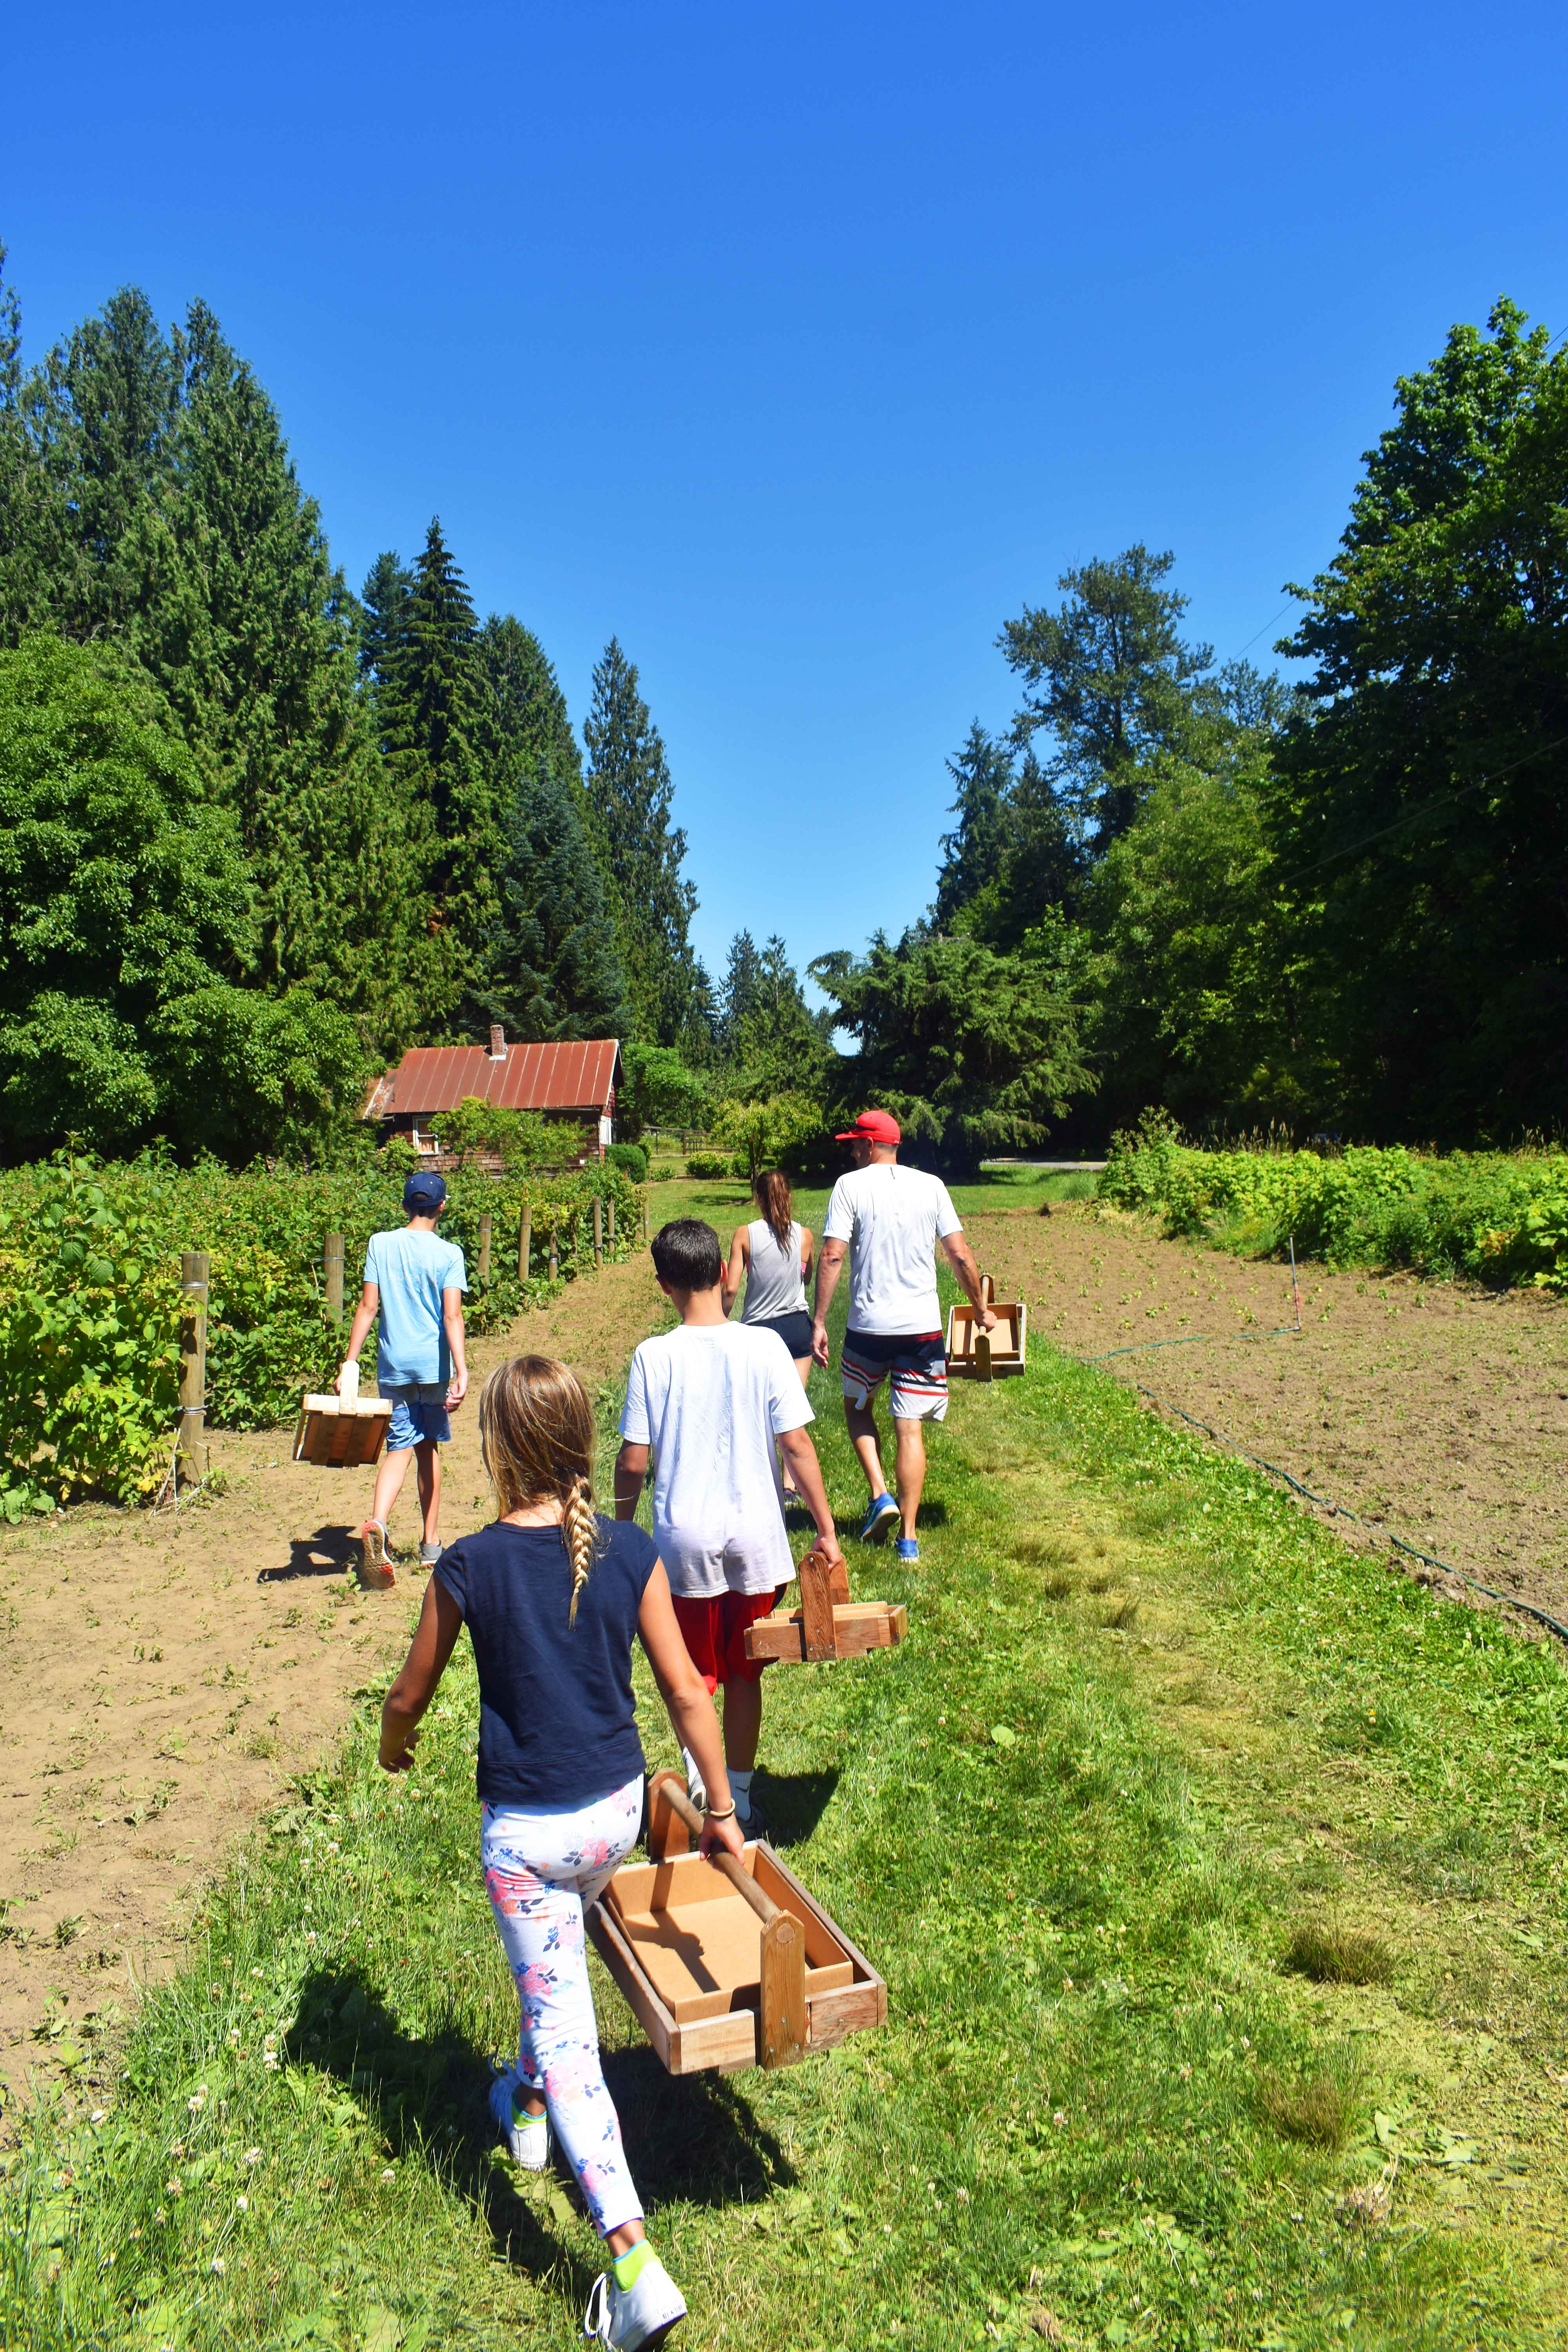 Berry Picking in Carnation Washington at Remlinger Farms. Best Places to Eat and See in Seattle. The most popular spots to visit and the best restaurants. Tips on the best places to see in Seattle Washington. www.modernhoney.com